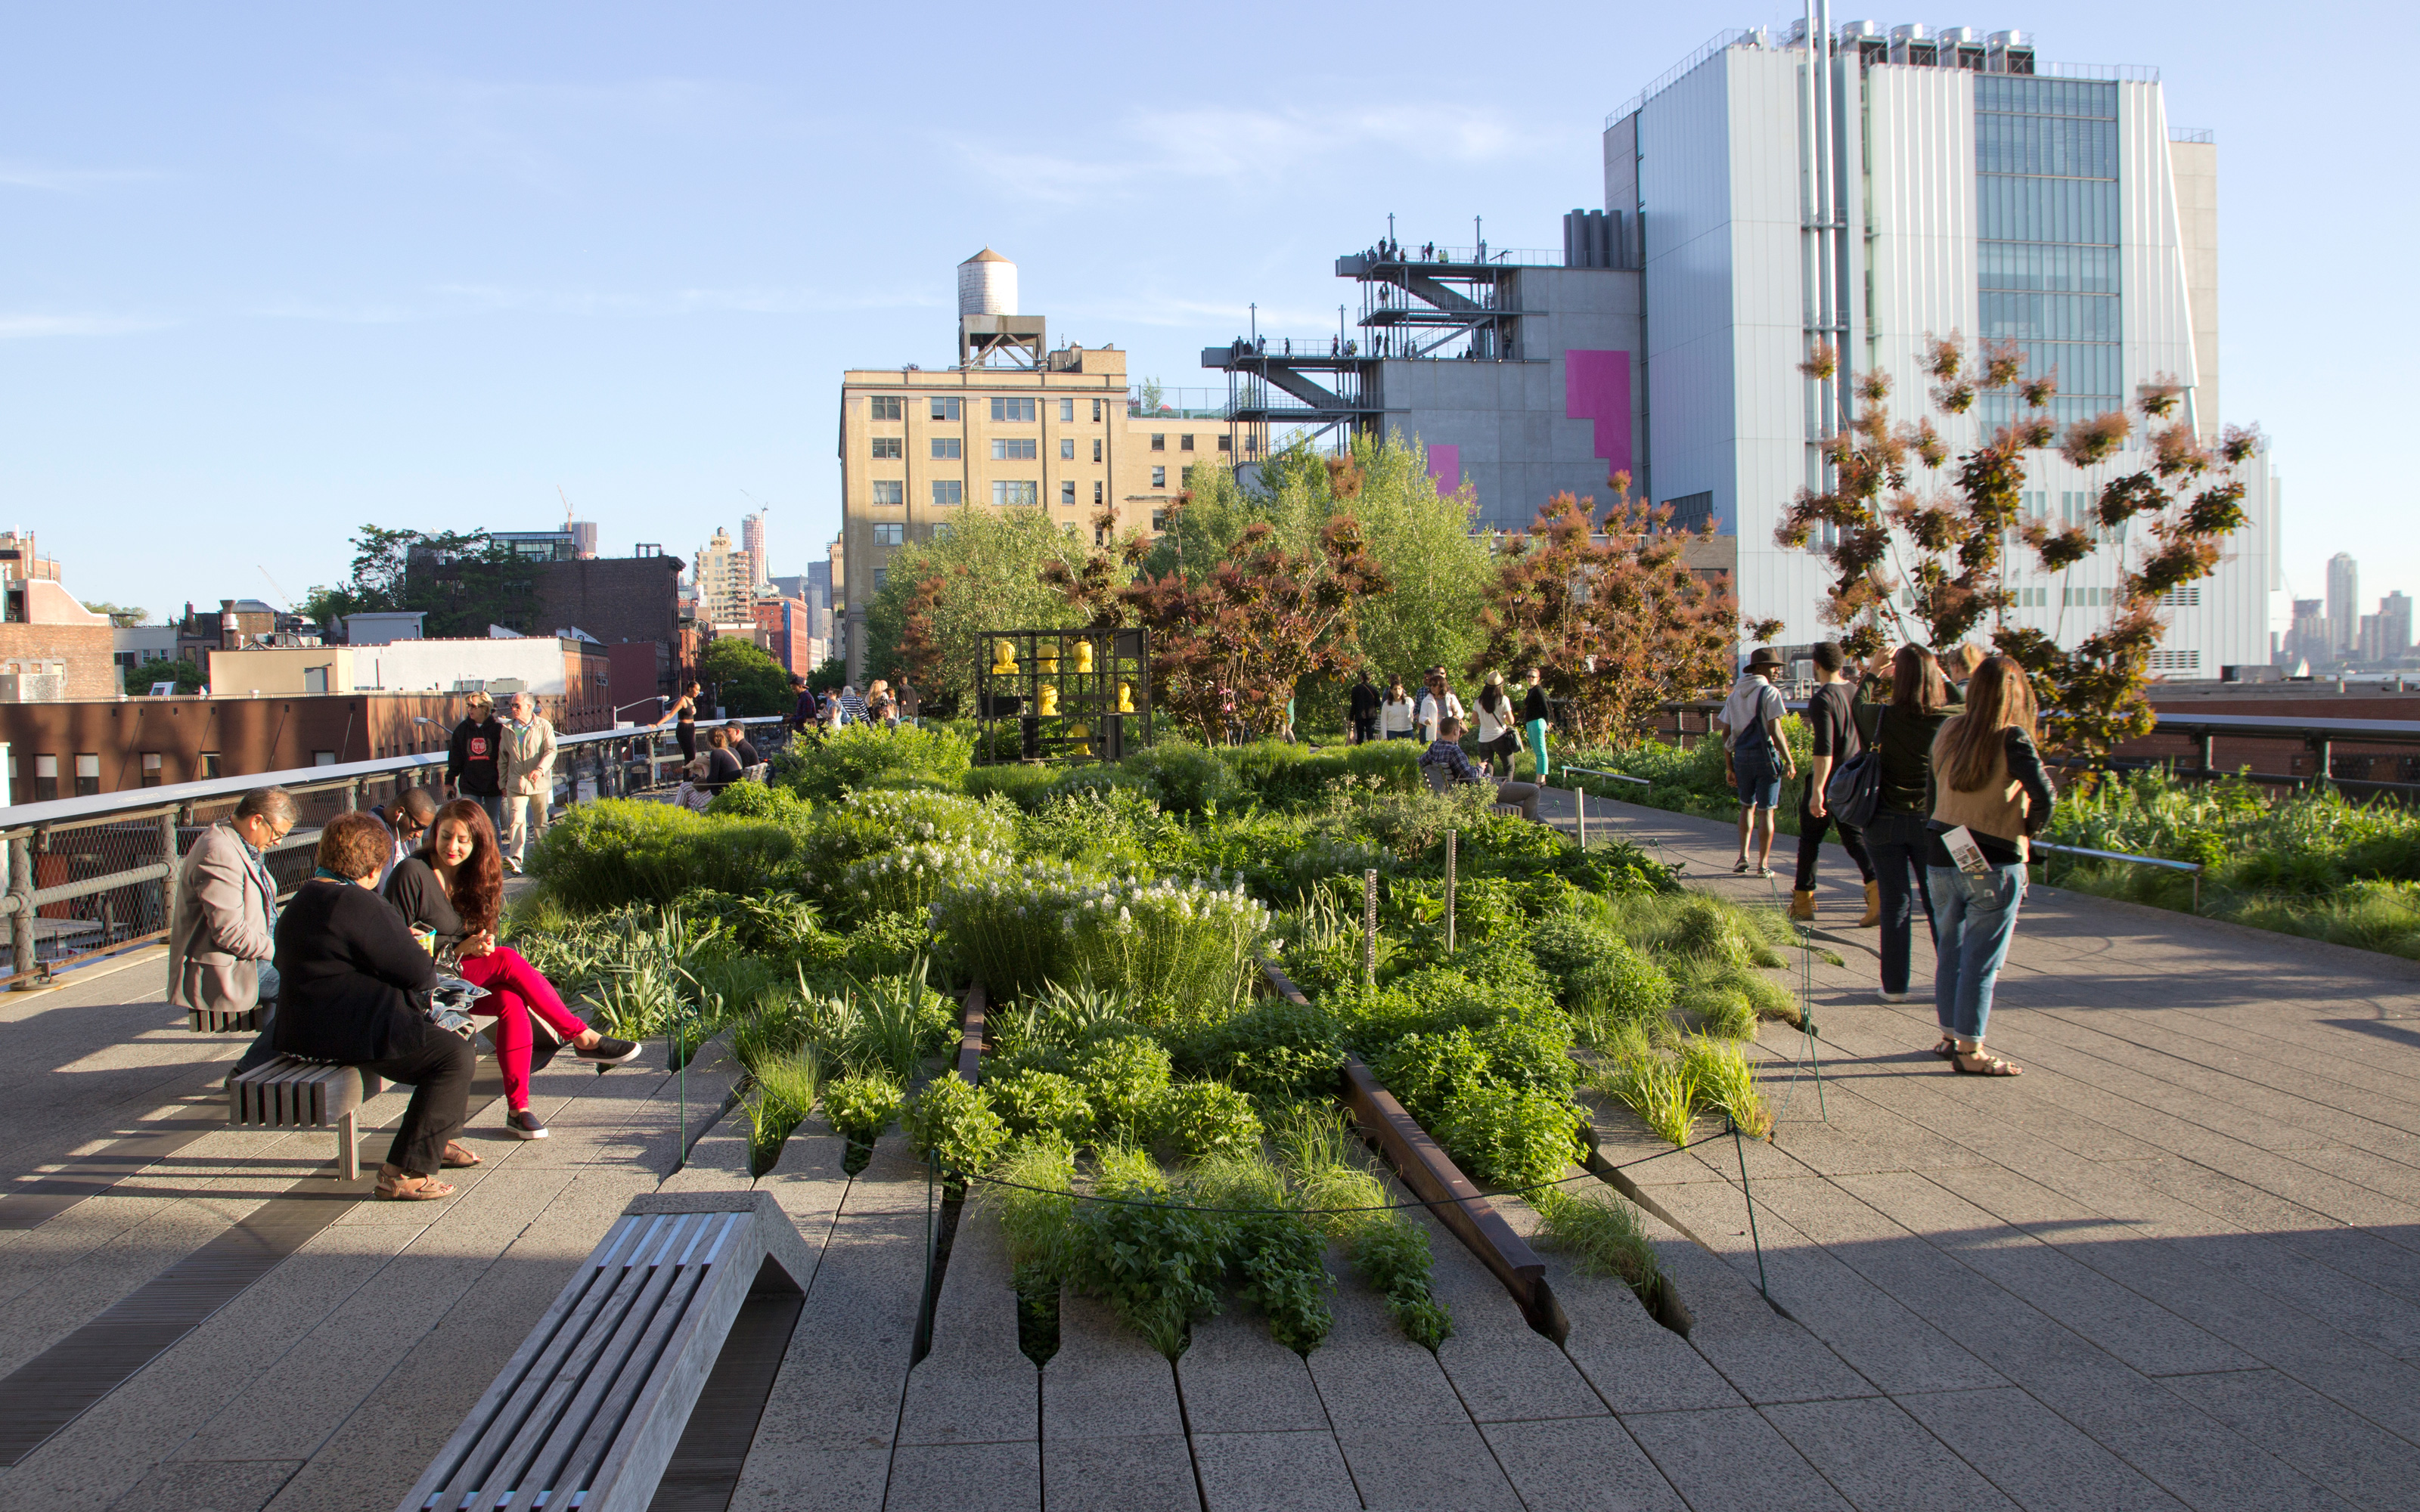 The High Line with walkways and vegetated rails